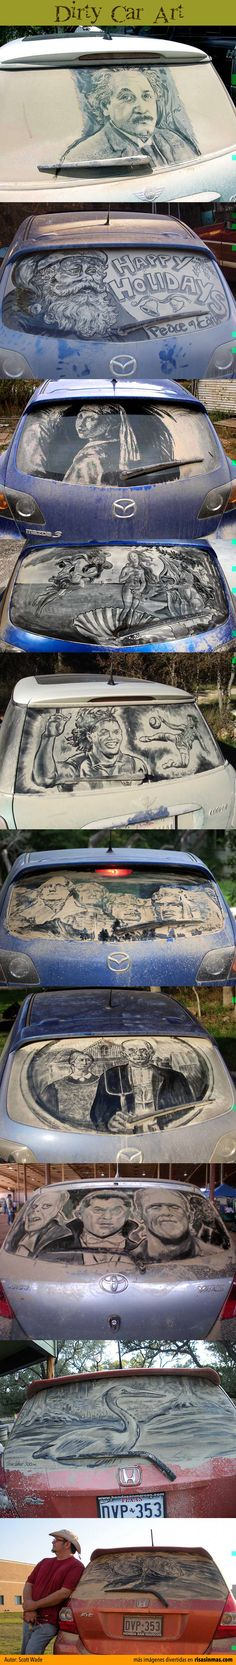 Id use this as an excuse not to wash my car lol I'd call it art :D